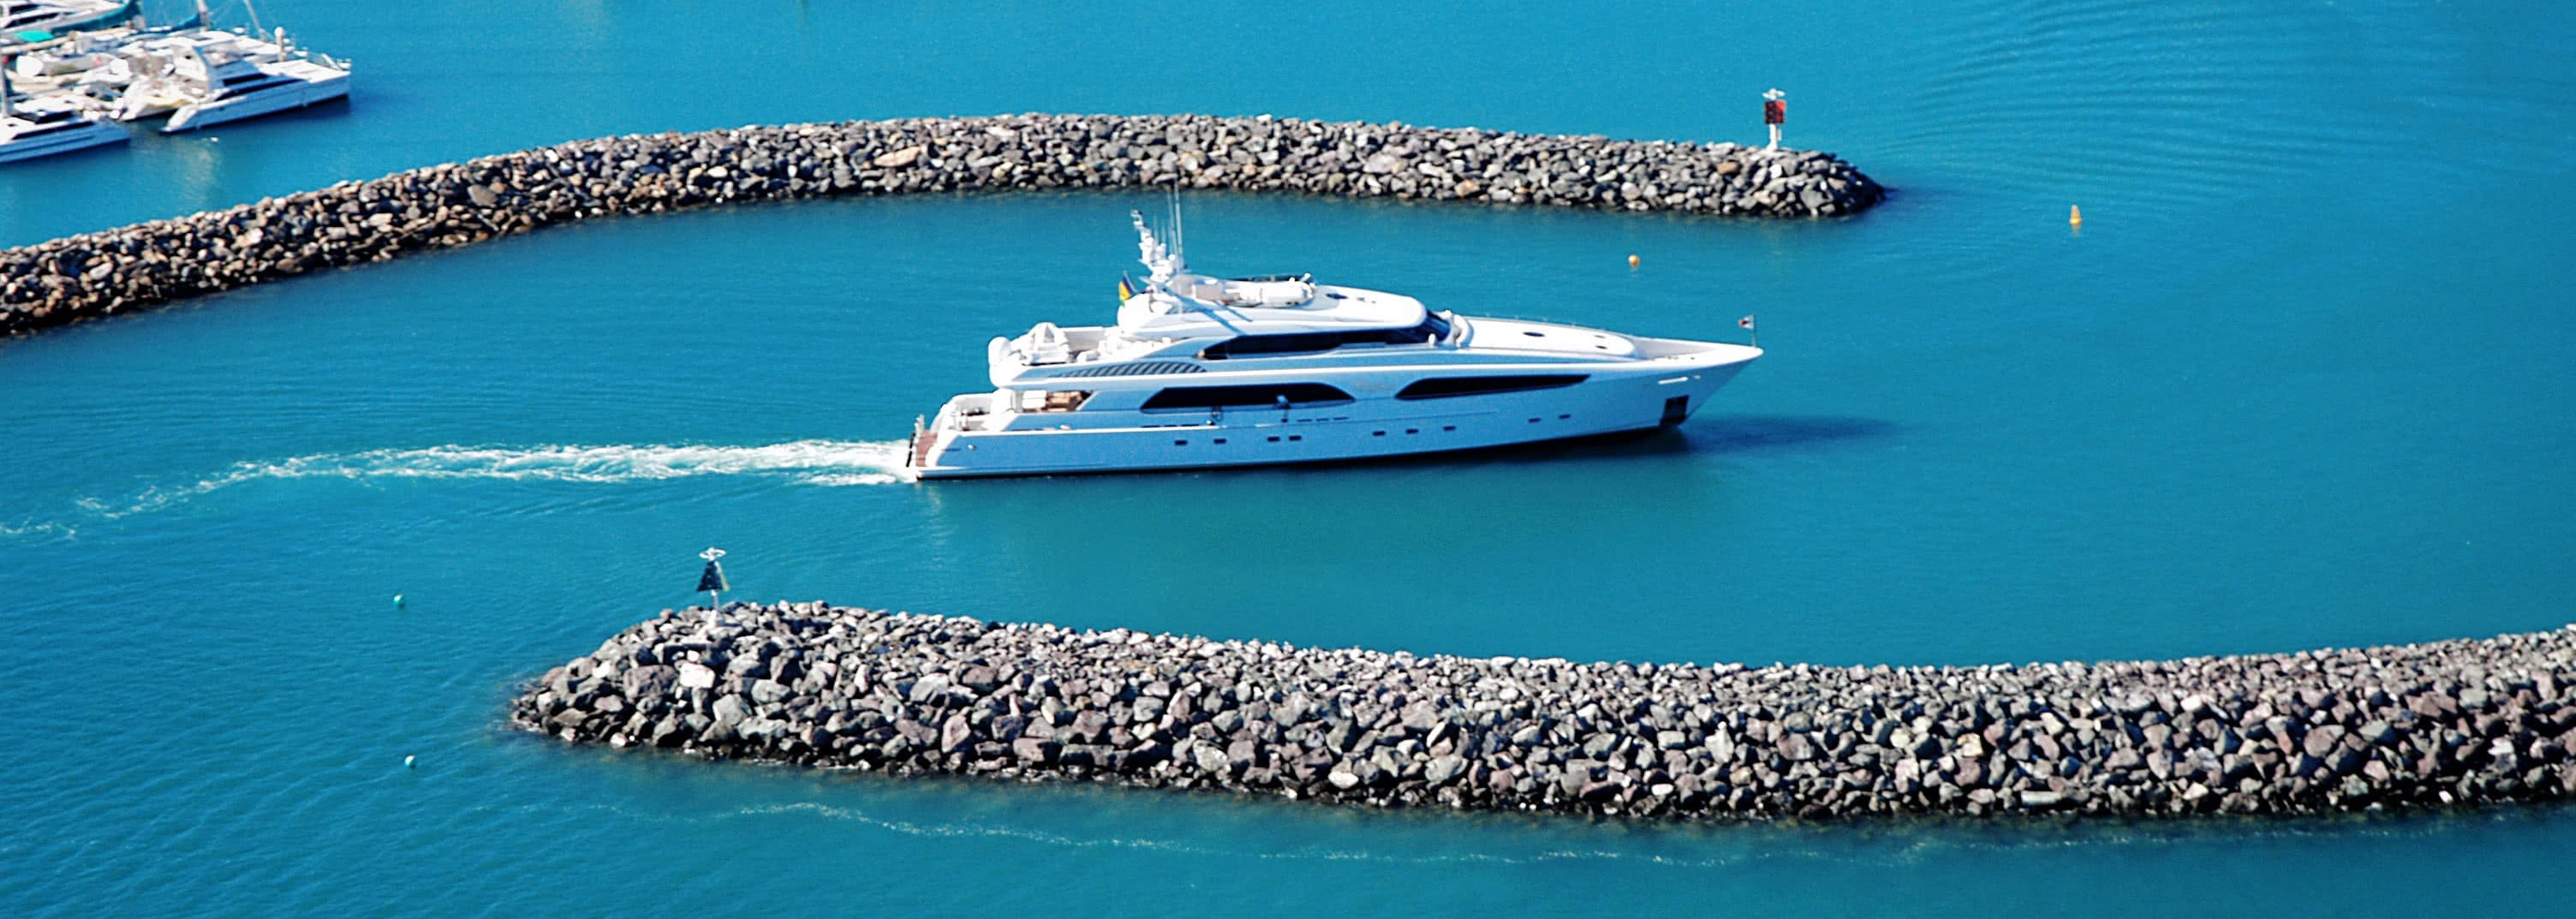 Study shows superyacht value